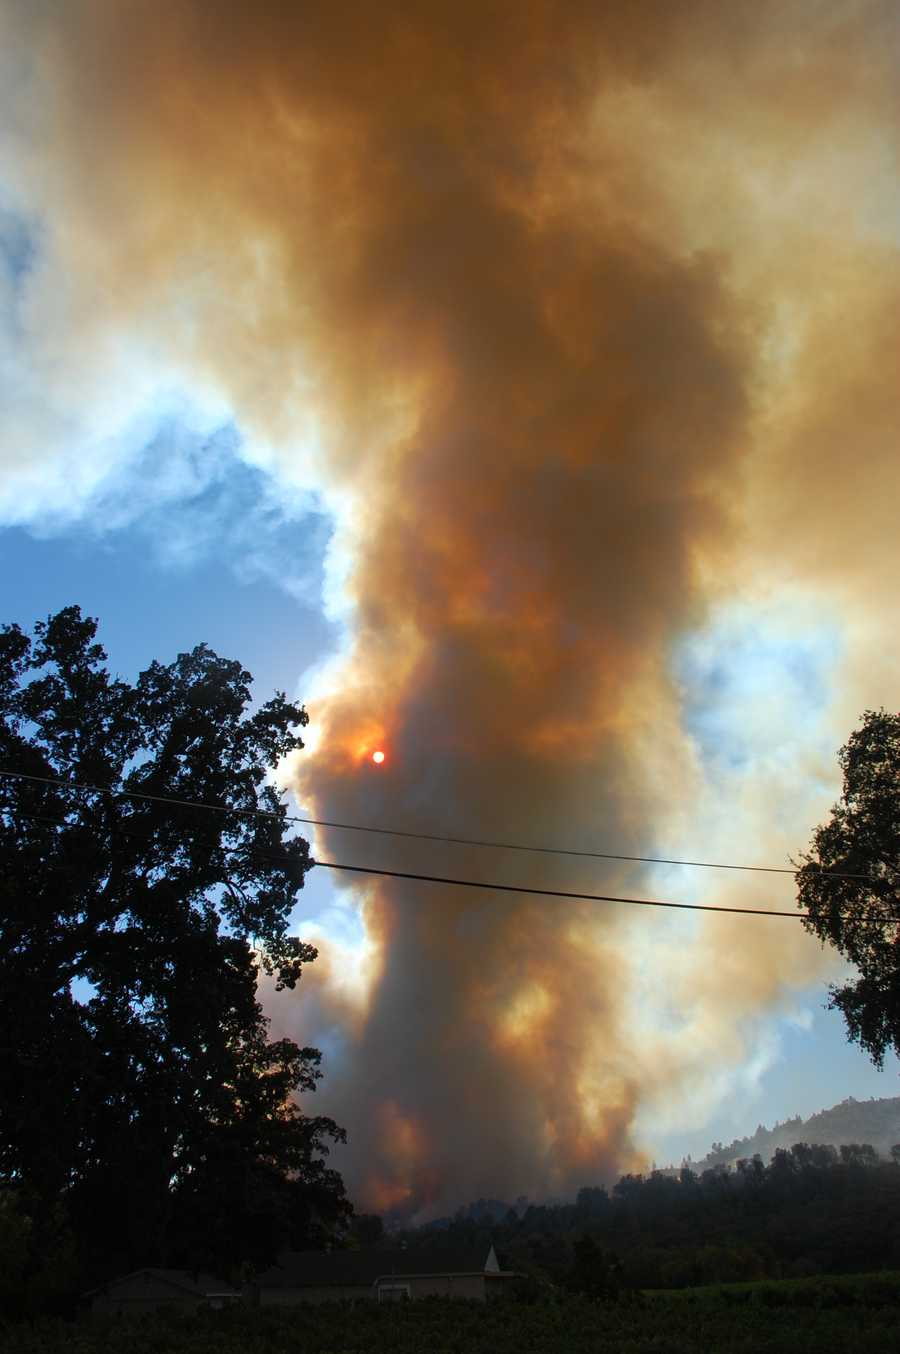 By Thursday evening, the fire had grown to 300 acres and was threatening several homes, Cal Fire reported.